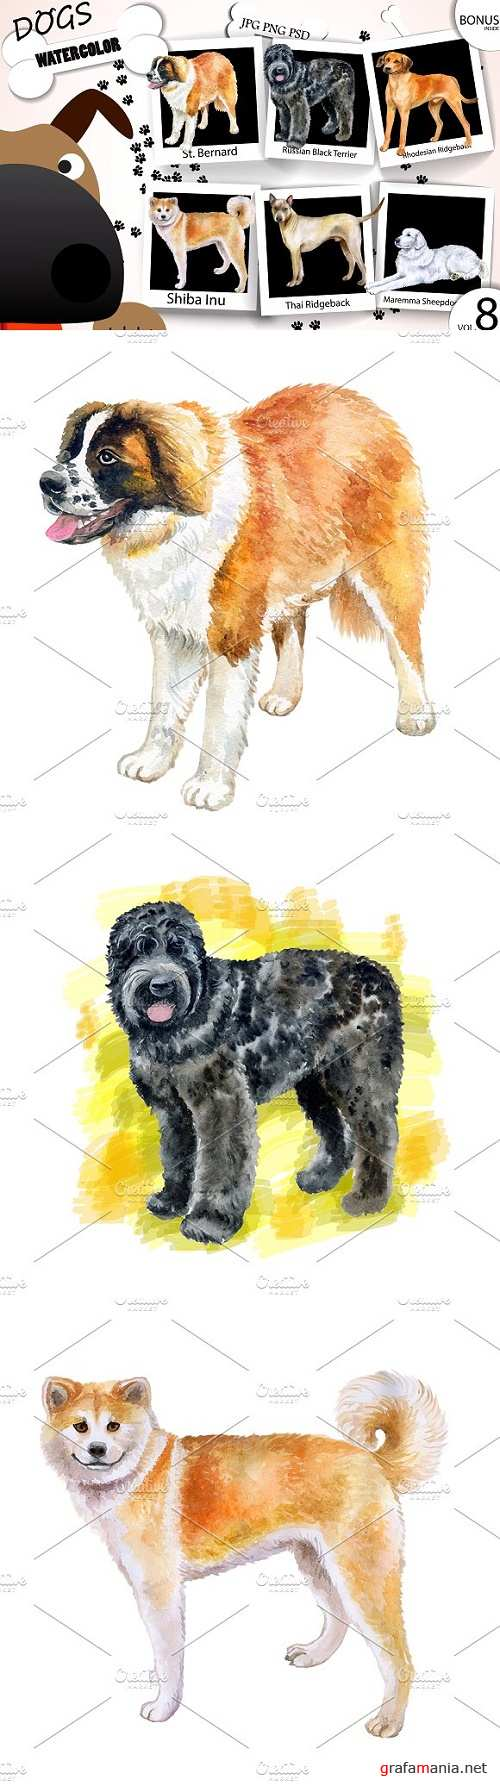 Watercolor Dogs - Collection 8 of 12 - 1748870